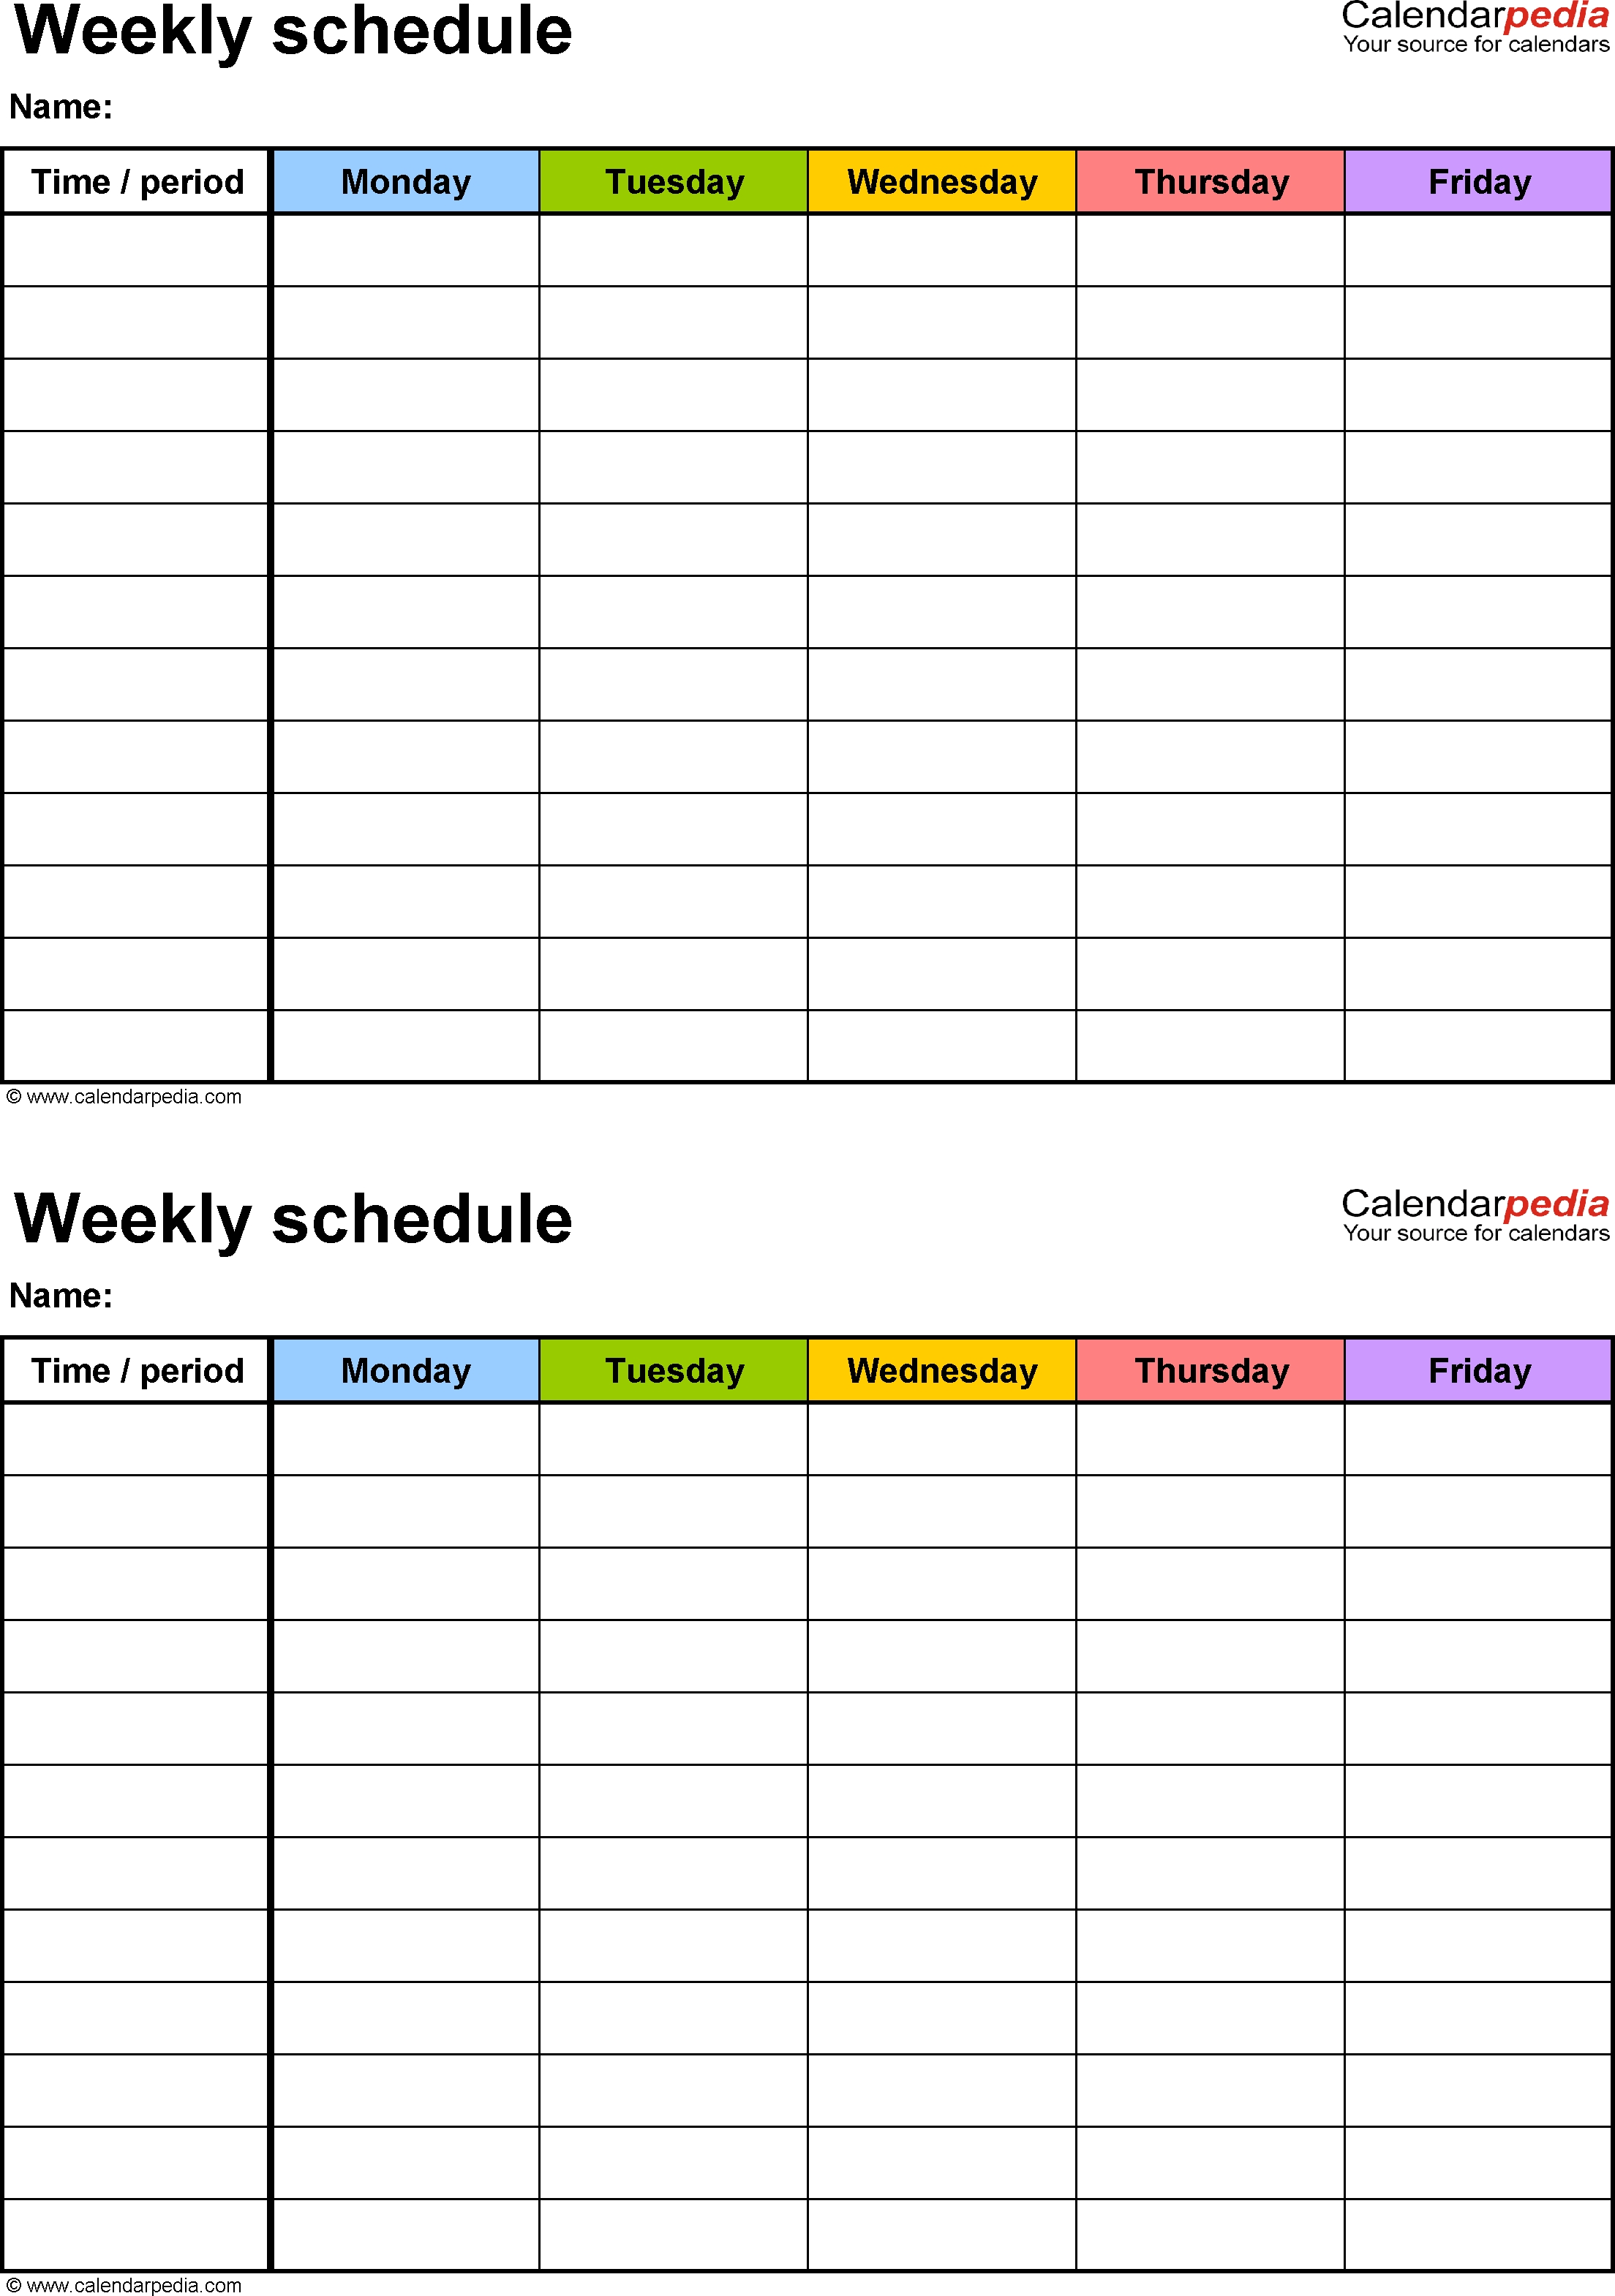 Free Weekly Schedule Templates For Word - 18 Templates inside Monday To Friday Weekly Planner